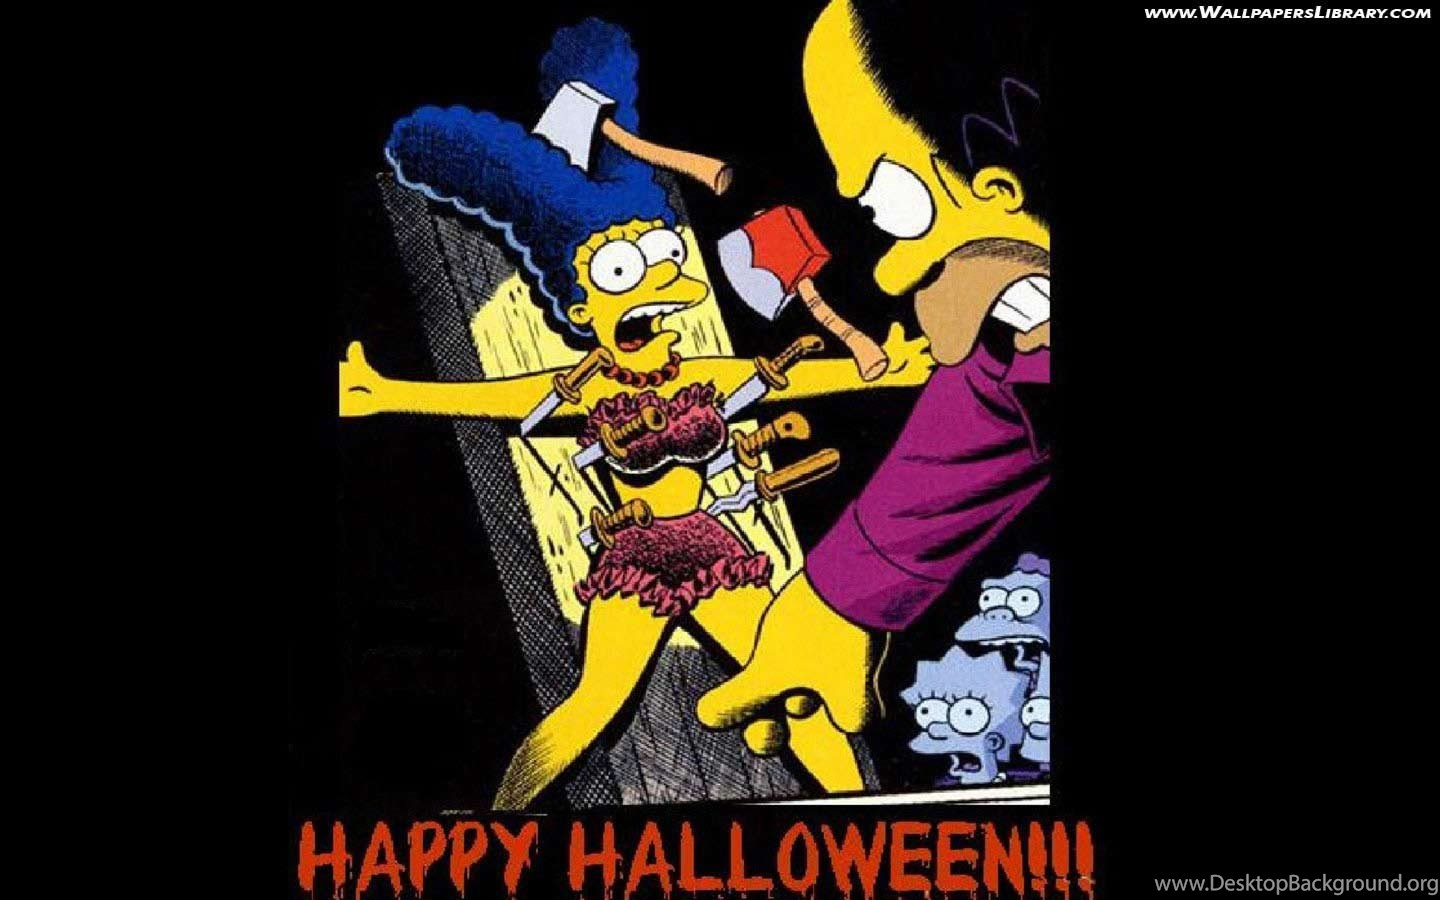 Must see Wallpaper Halloween Superhero - 1011971_wallpapers-simpsons-funny-halloween-1440x900_1440x900_h  Perfect Image Reference_911348.jpg